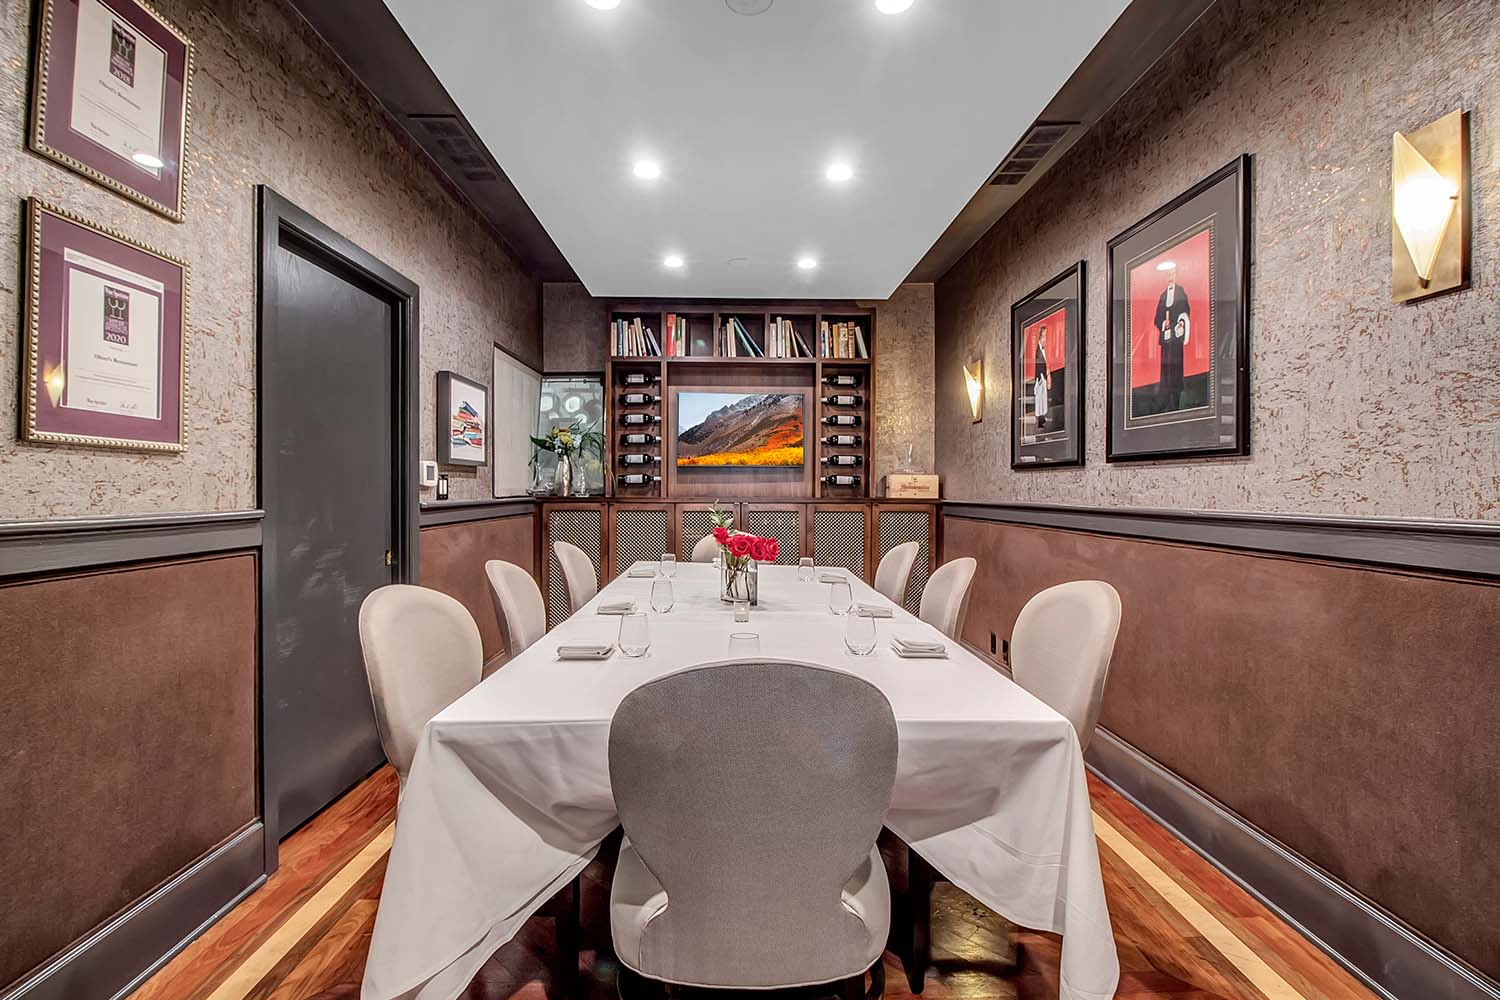 Oliver's Private Dining Room